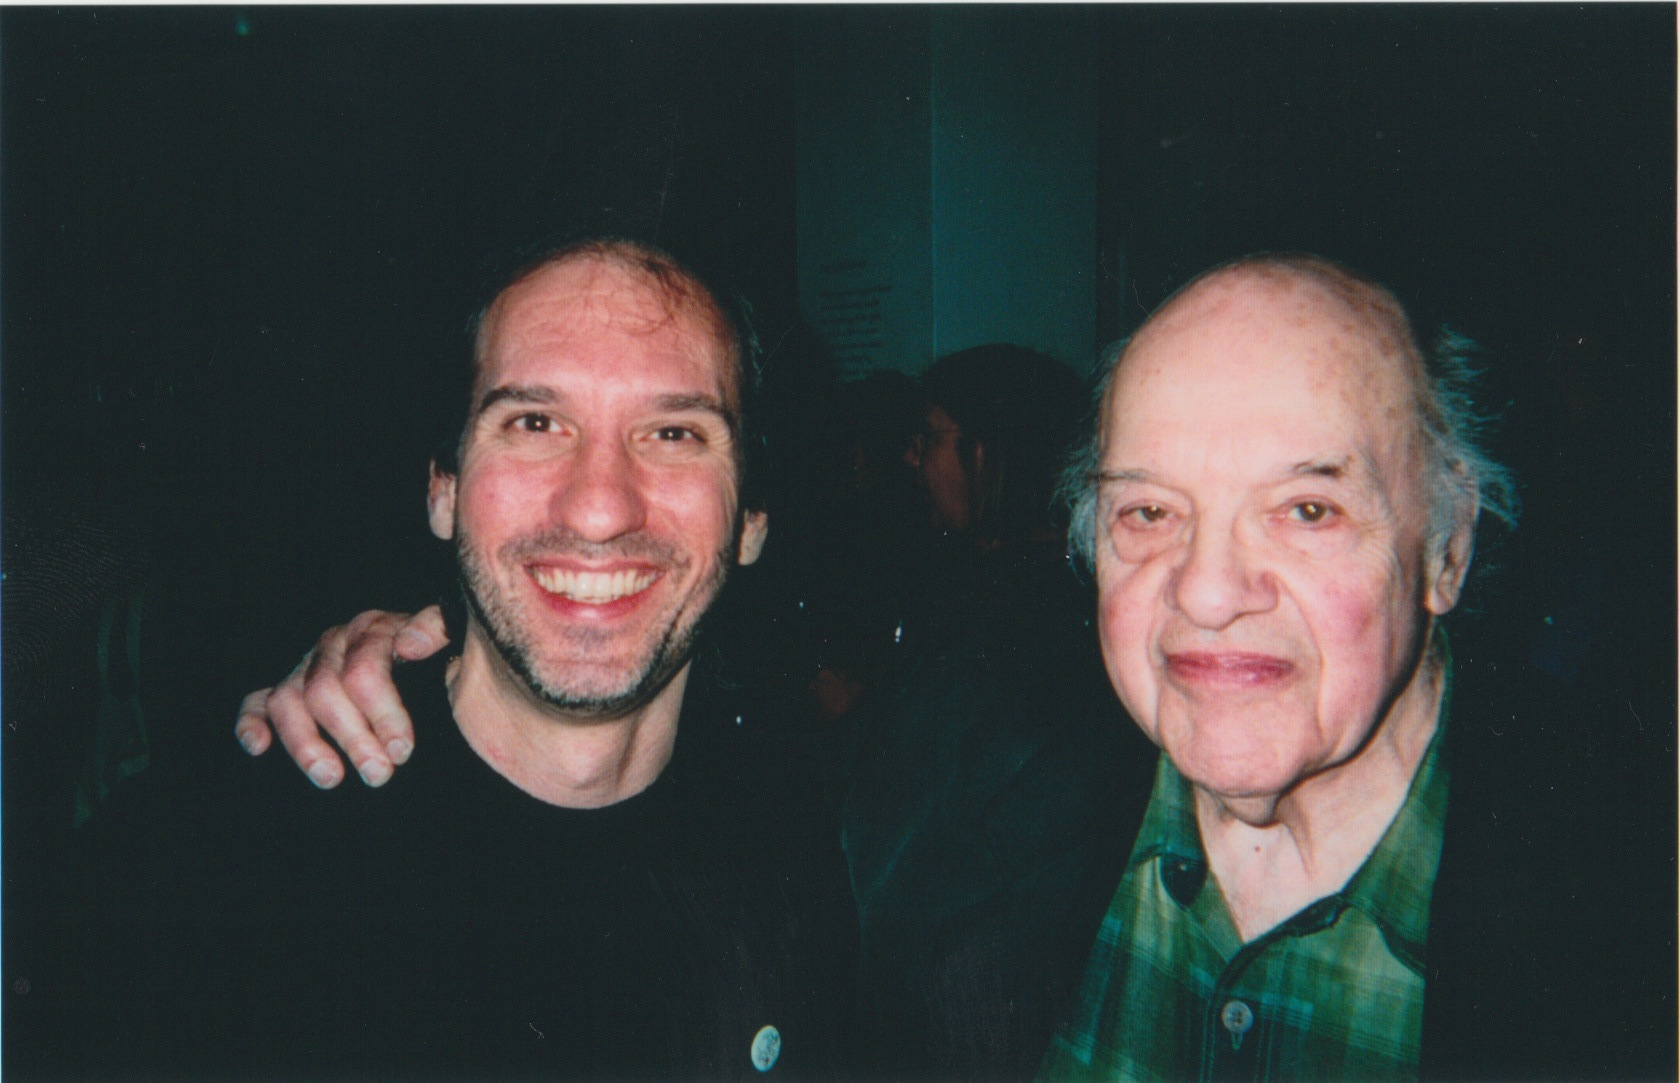 With Gerald Stern.